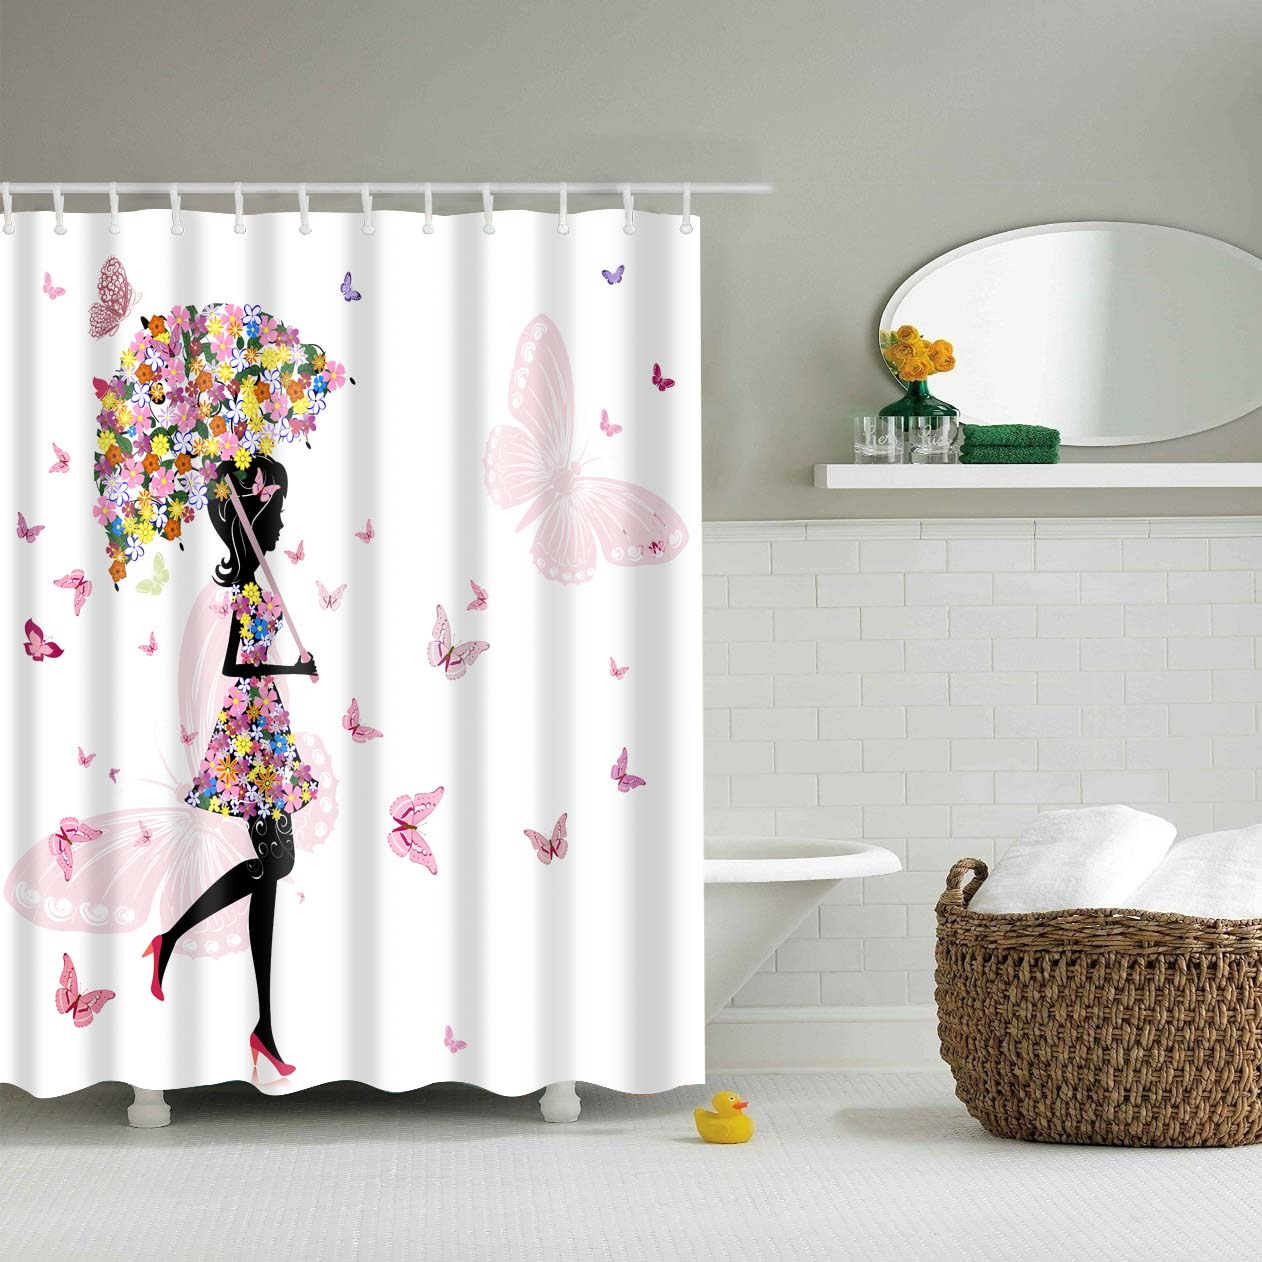 180x180cm Fabric Polyester Pink Butterfly Girl Waterproof Shower Curtain Bathroom With 12 hooks